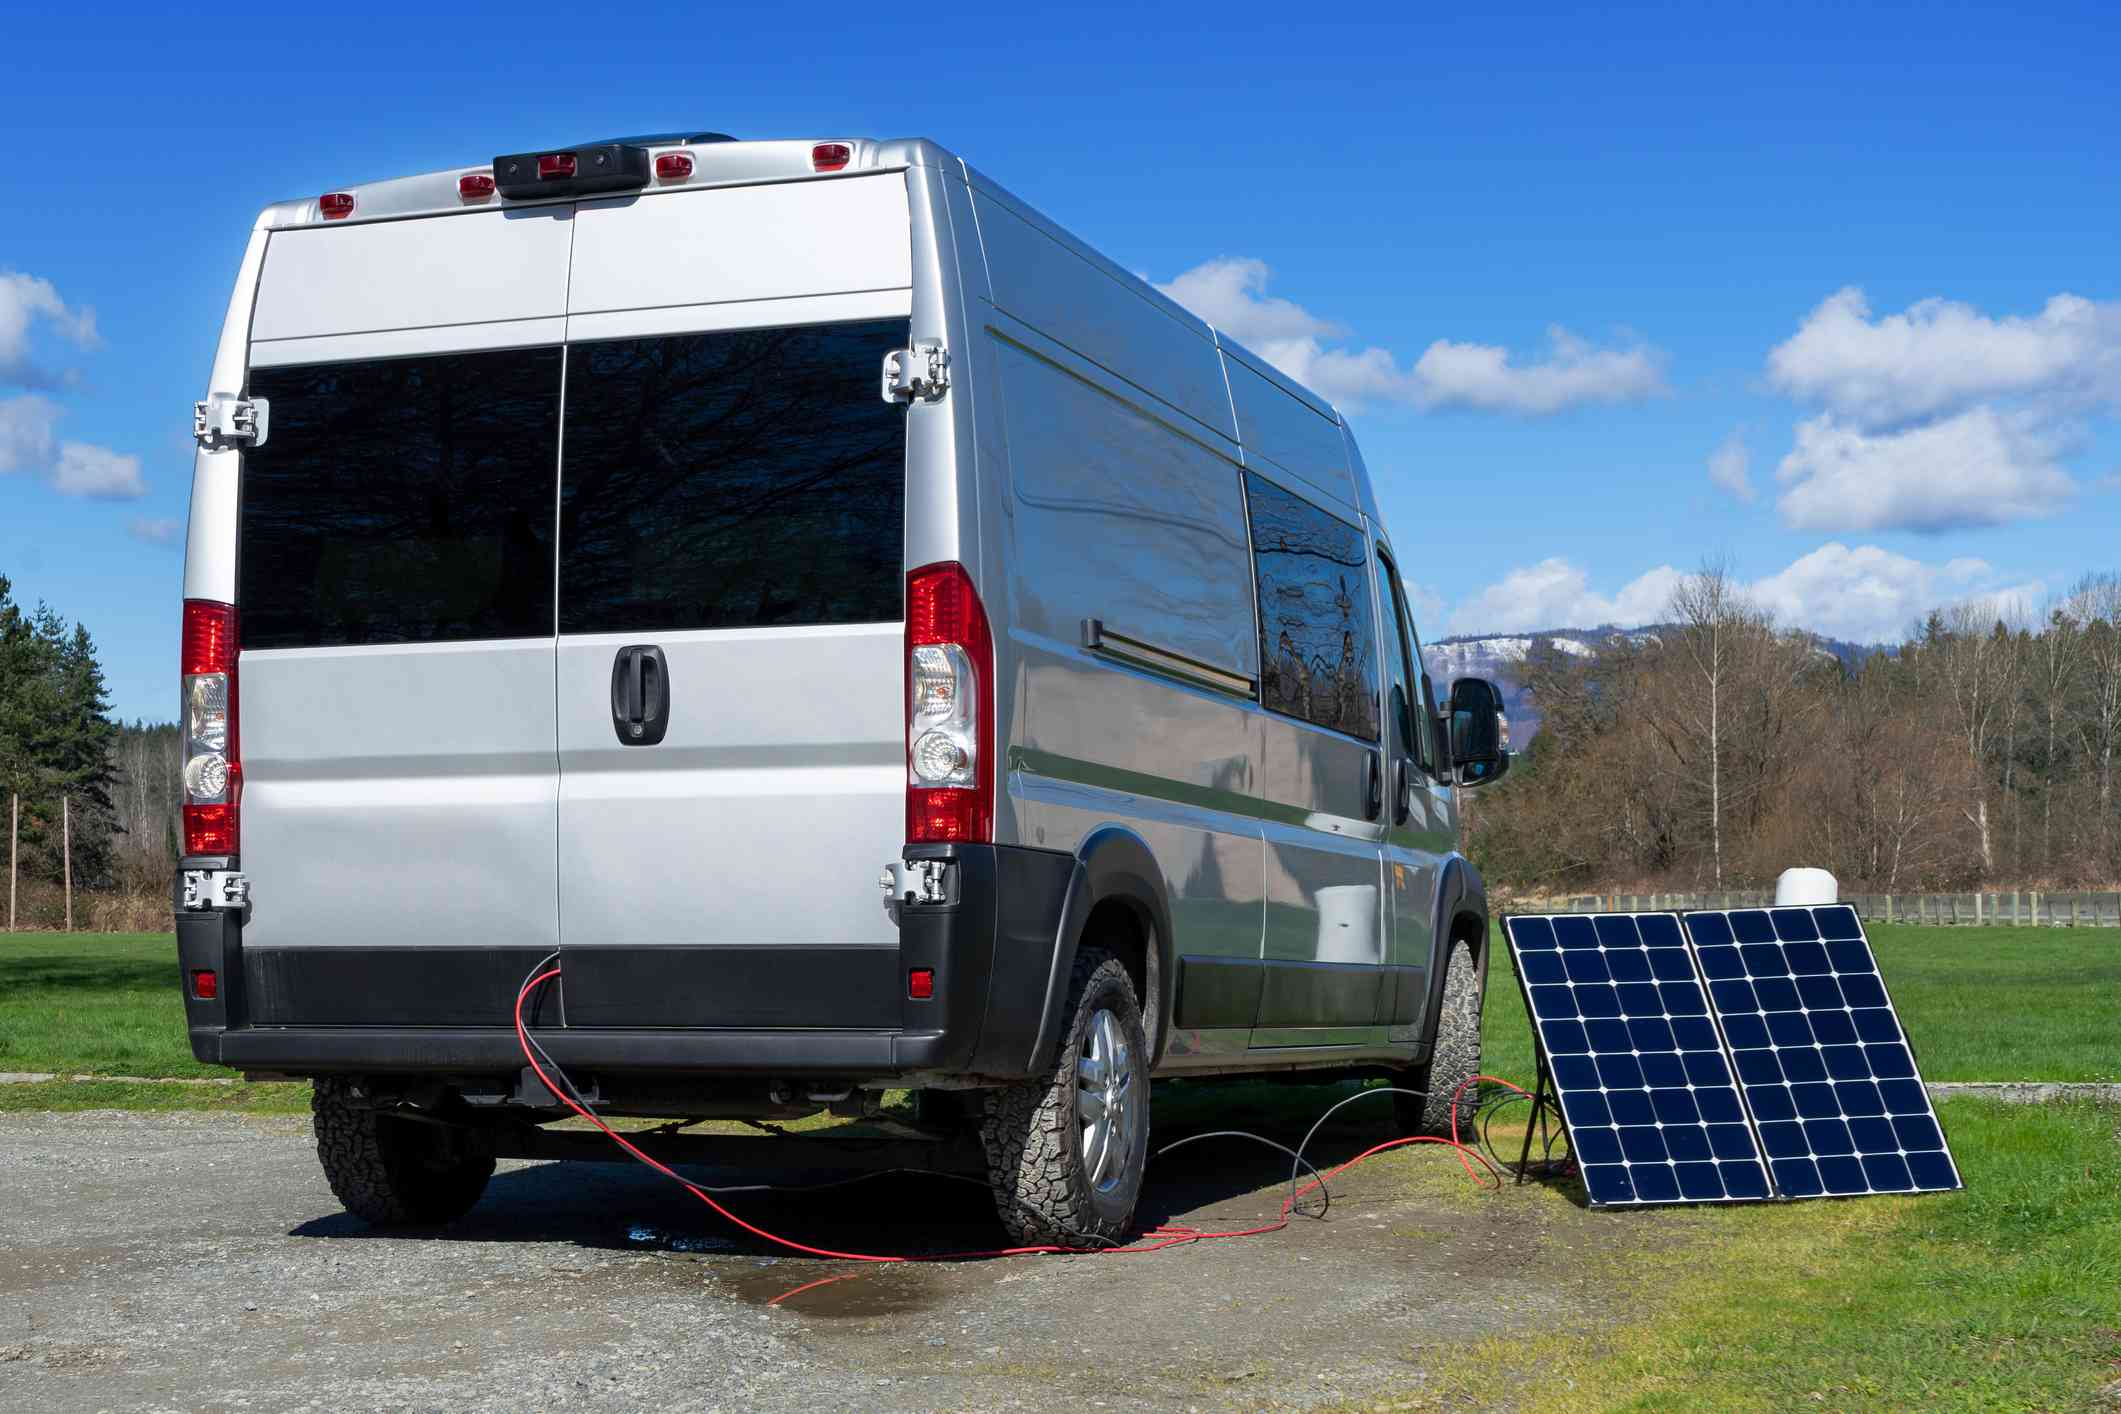 Van collecting energy from solar panel